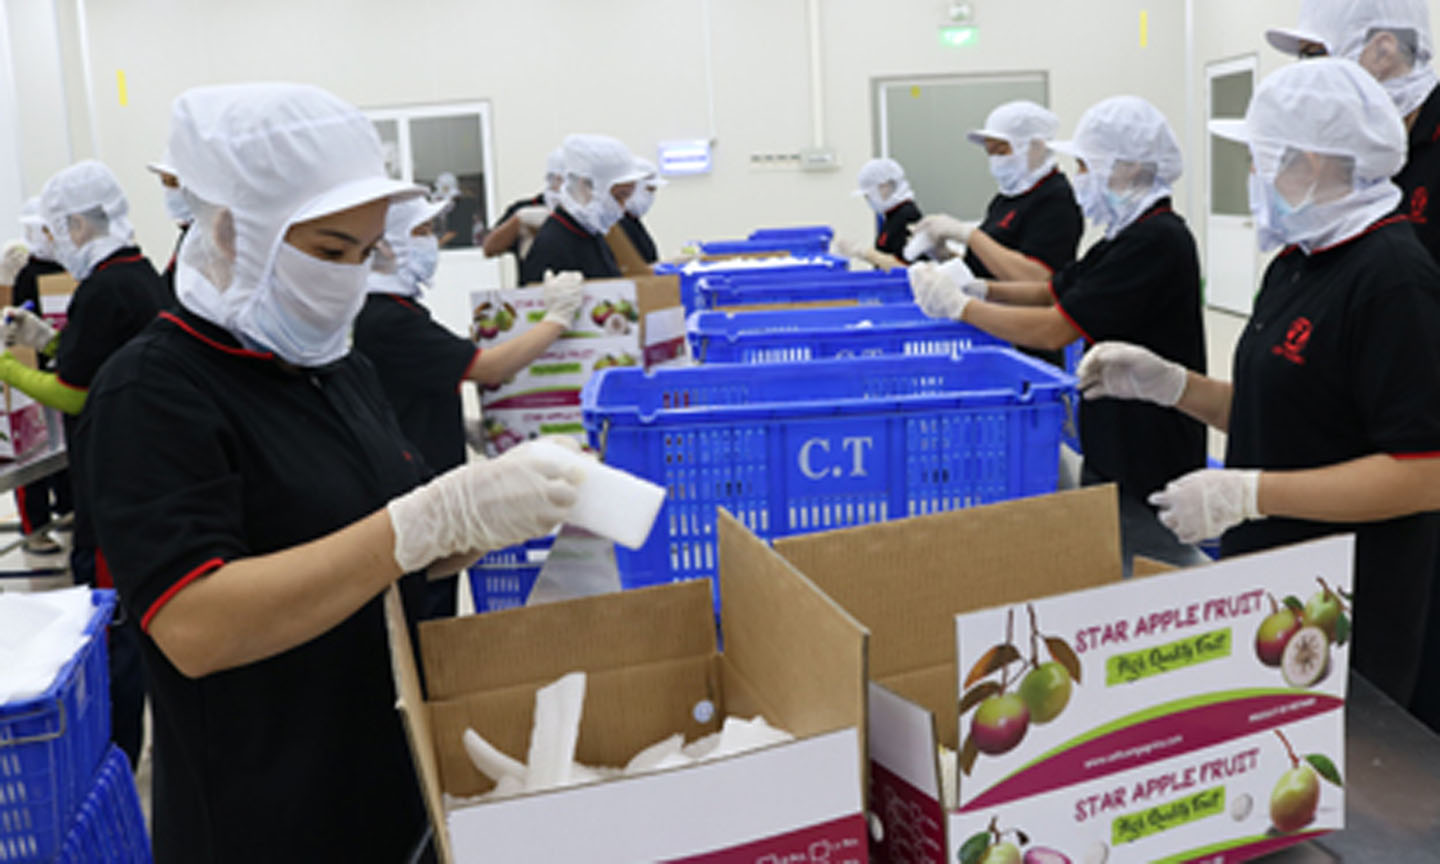 Tien Giang province strives to export more than 4.7% for 2019